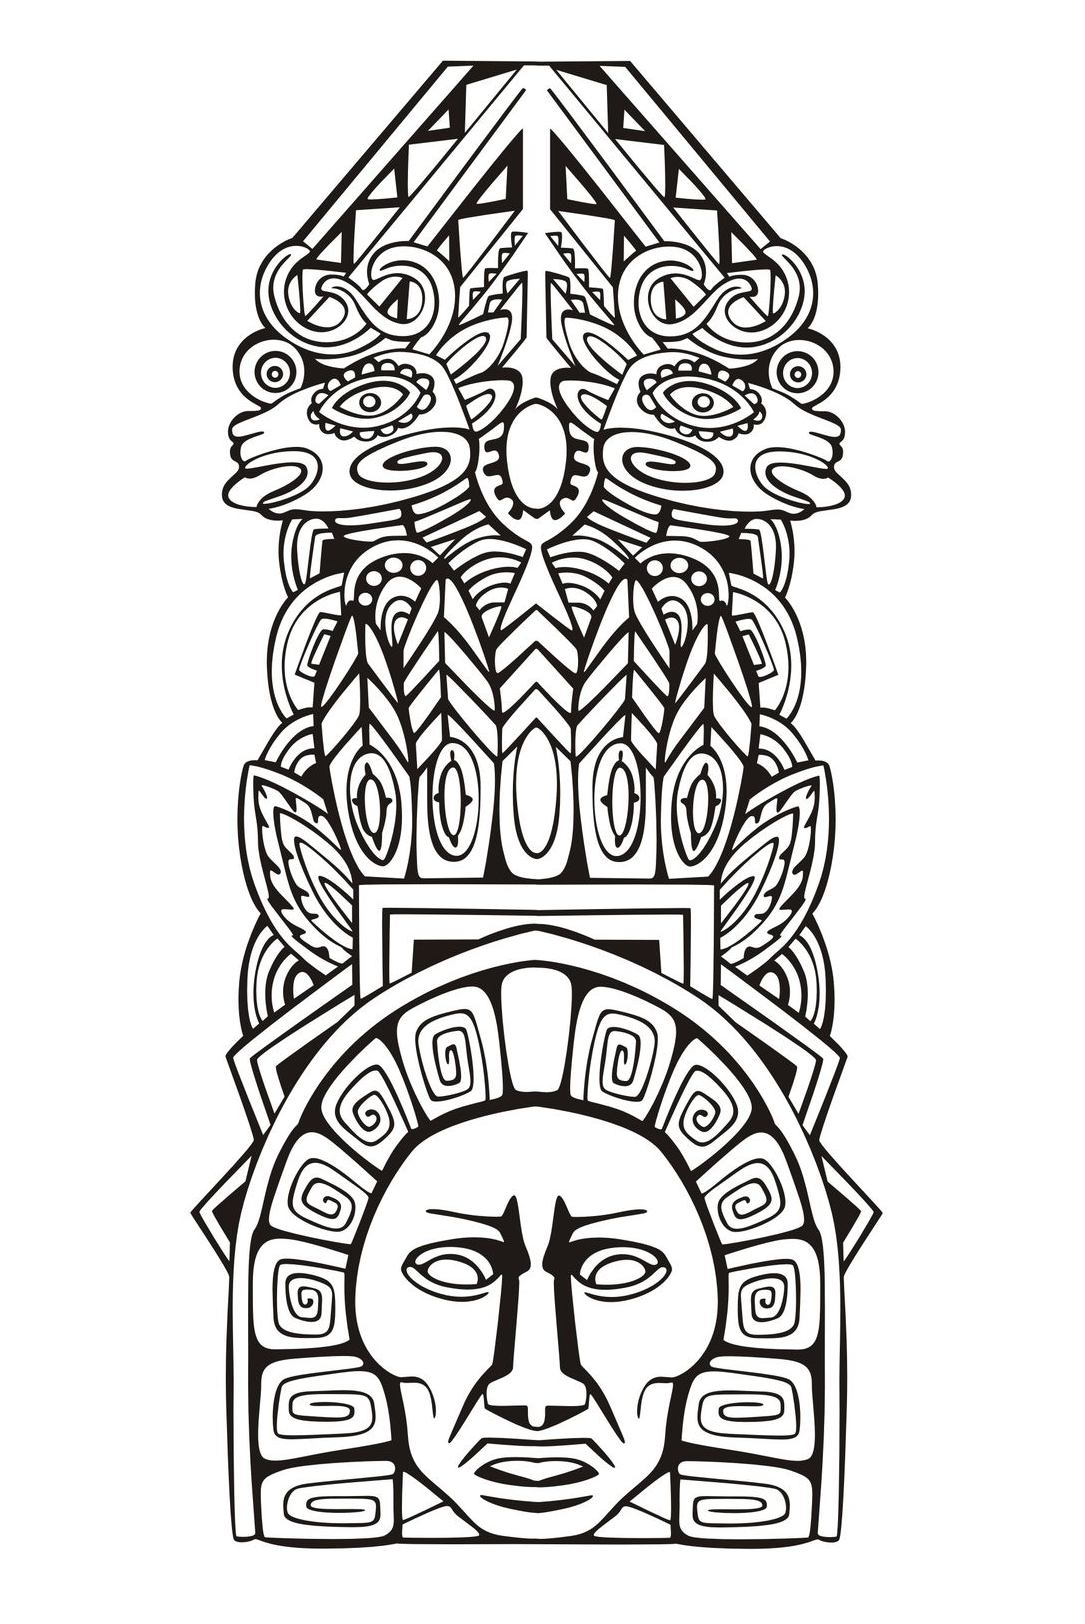 Masks coloring page to download for free